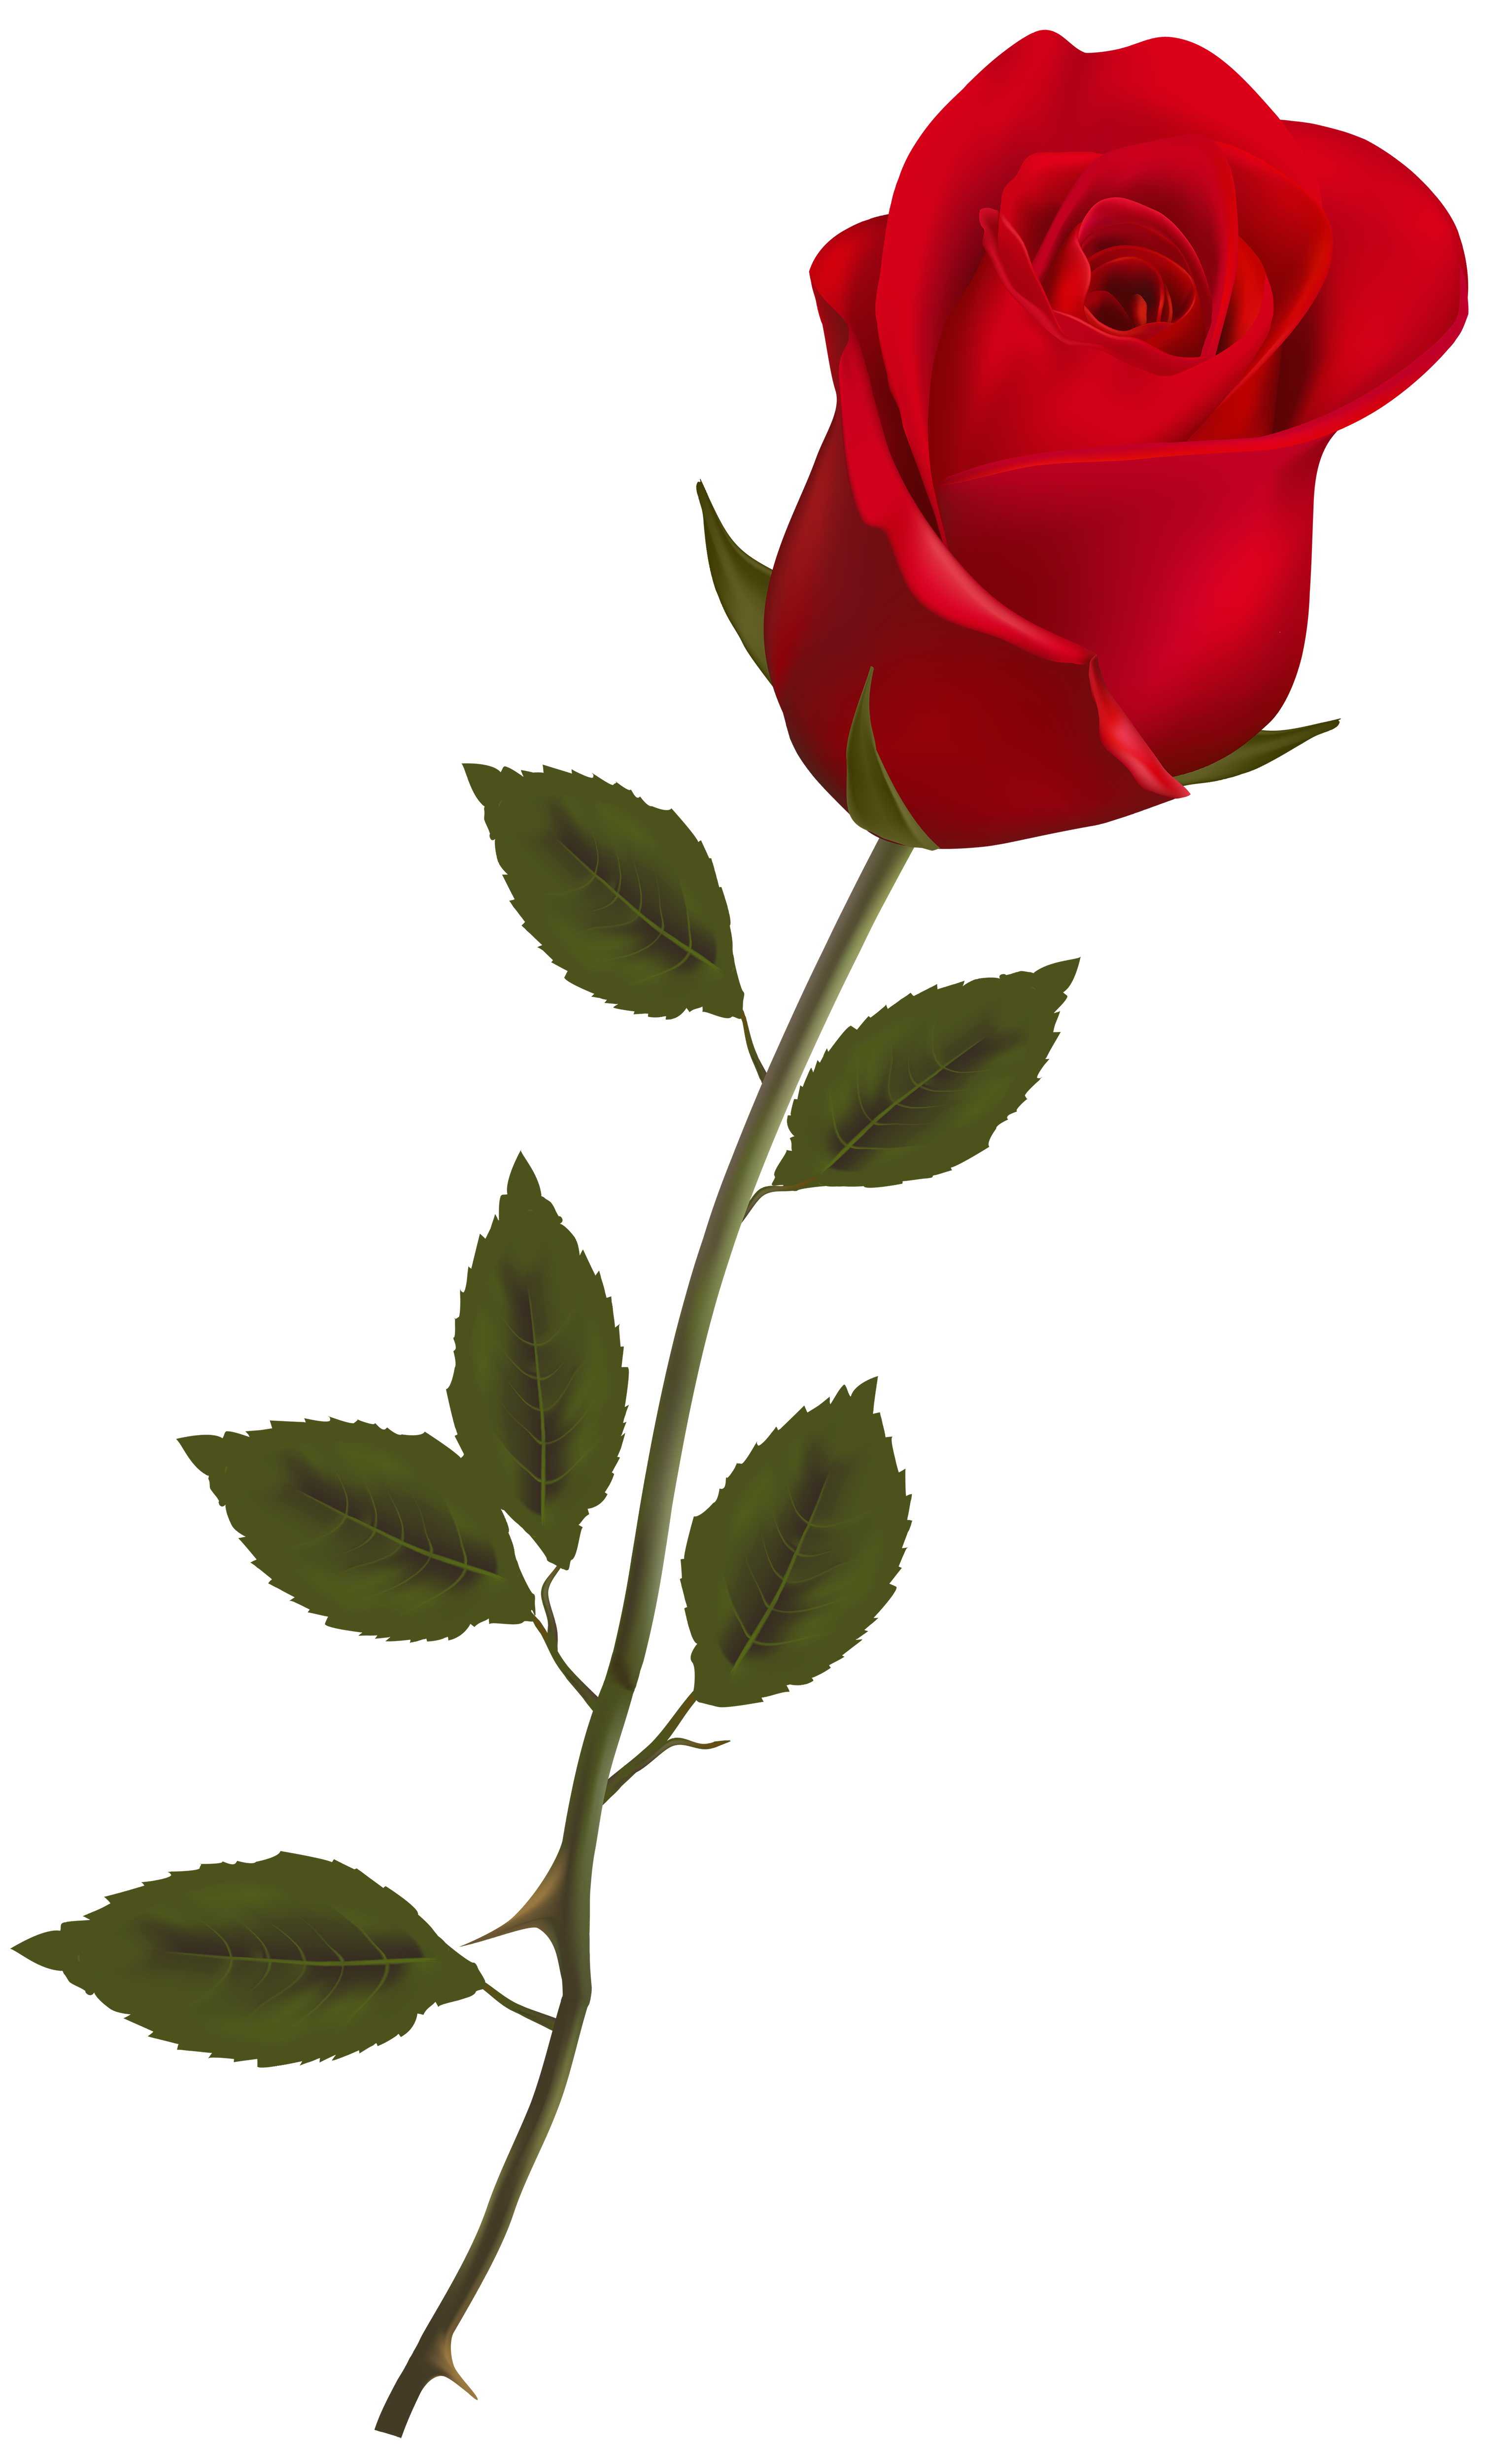 Roses Png Image image #39854